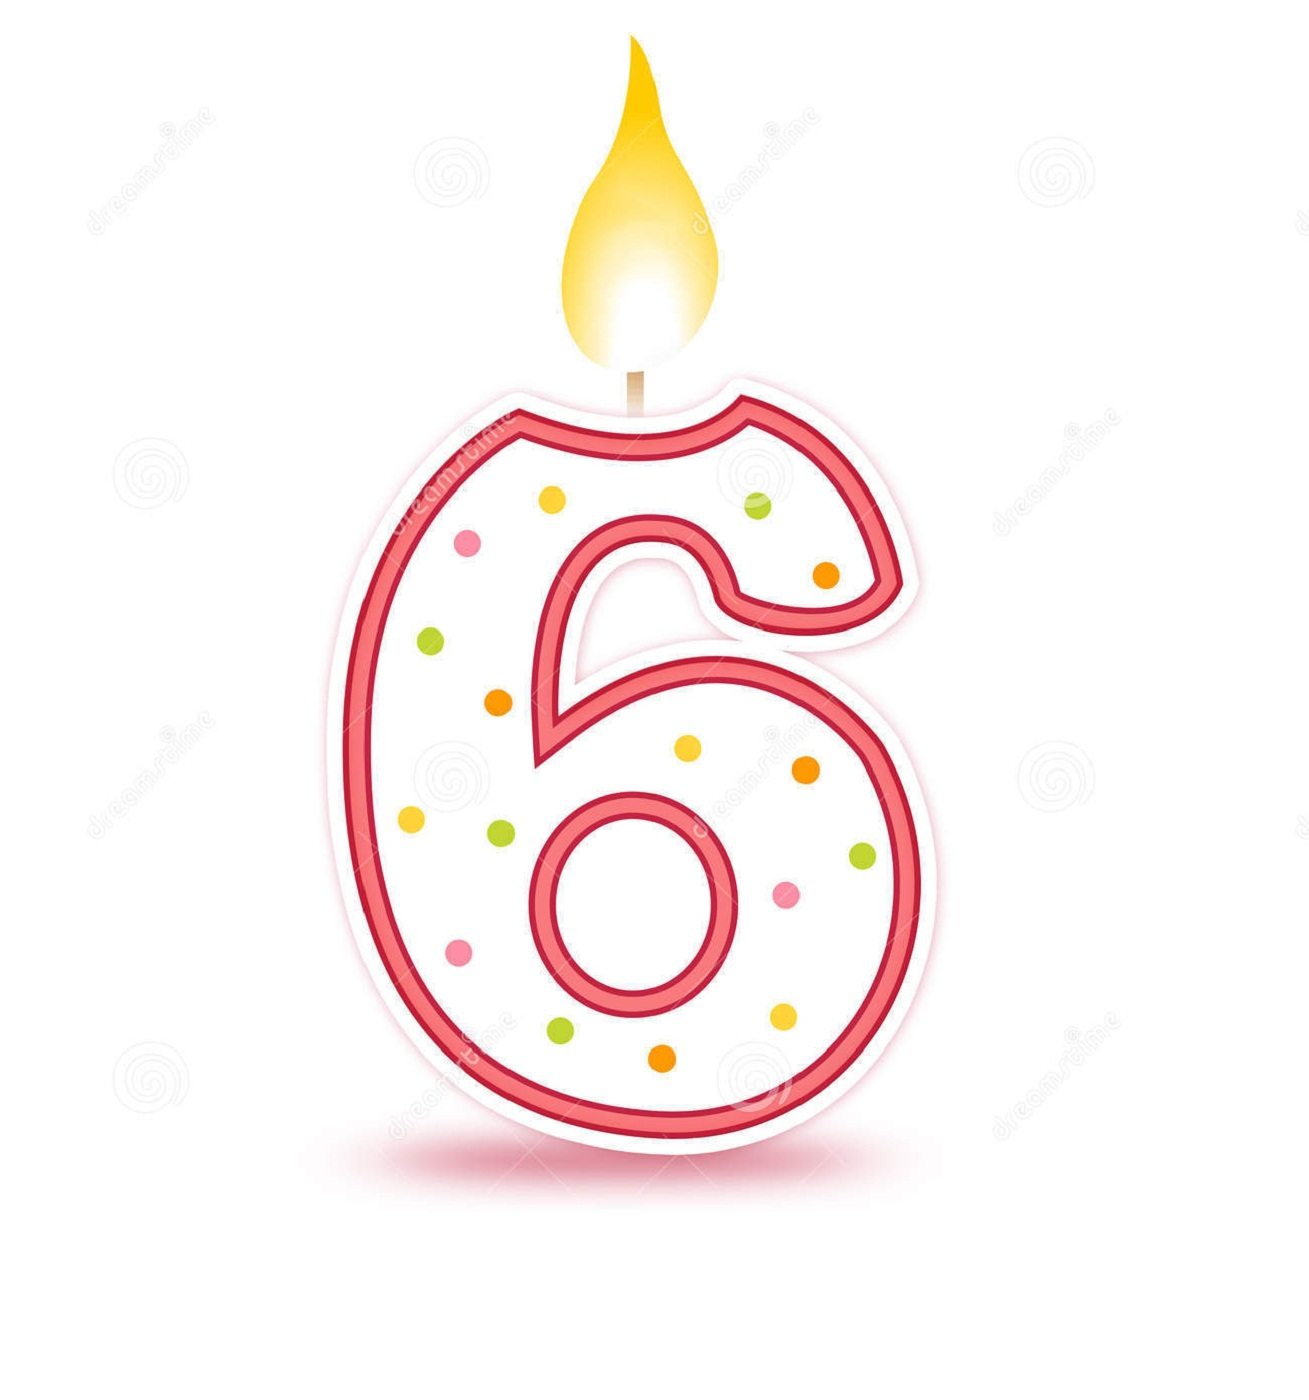 picture-of-the-number-6-birthday